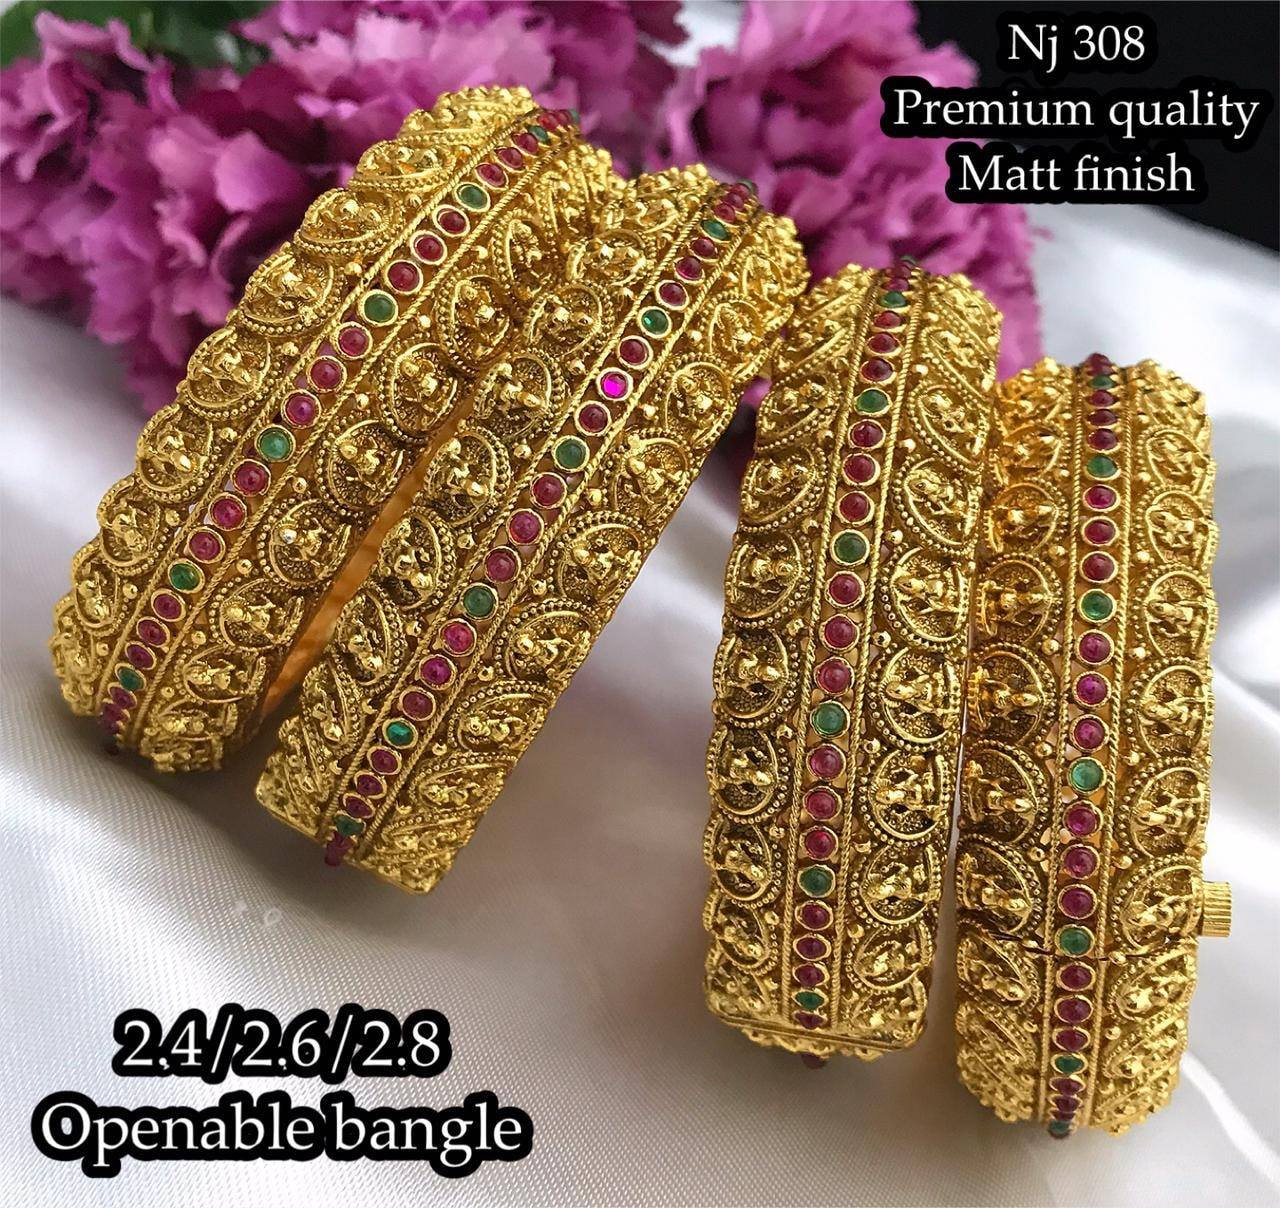 Stunning one gram gold Lakshmi bangles studded with pink and green stones. One gram gold openable bangles. 1 gram gold jewellery online shopping cash on delivery one gram gold kada bangles 1 gram gold sets with price